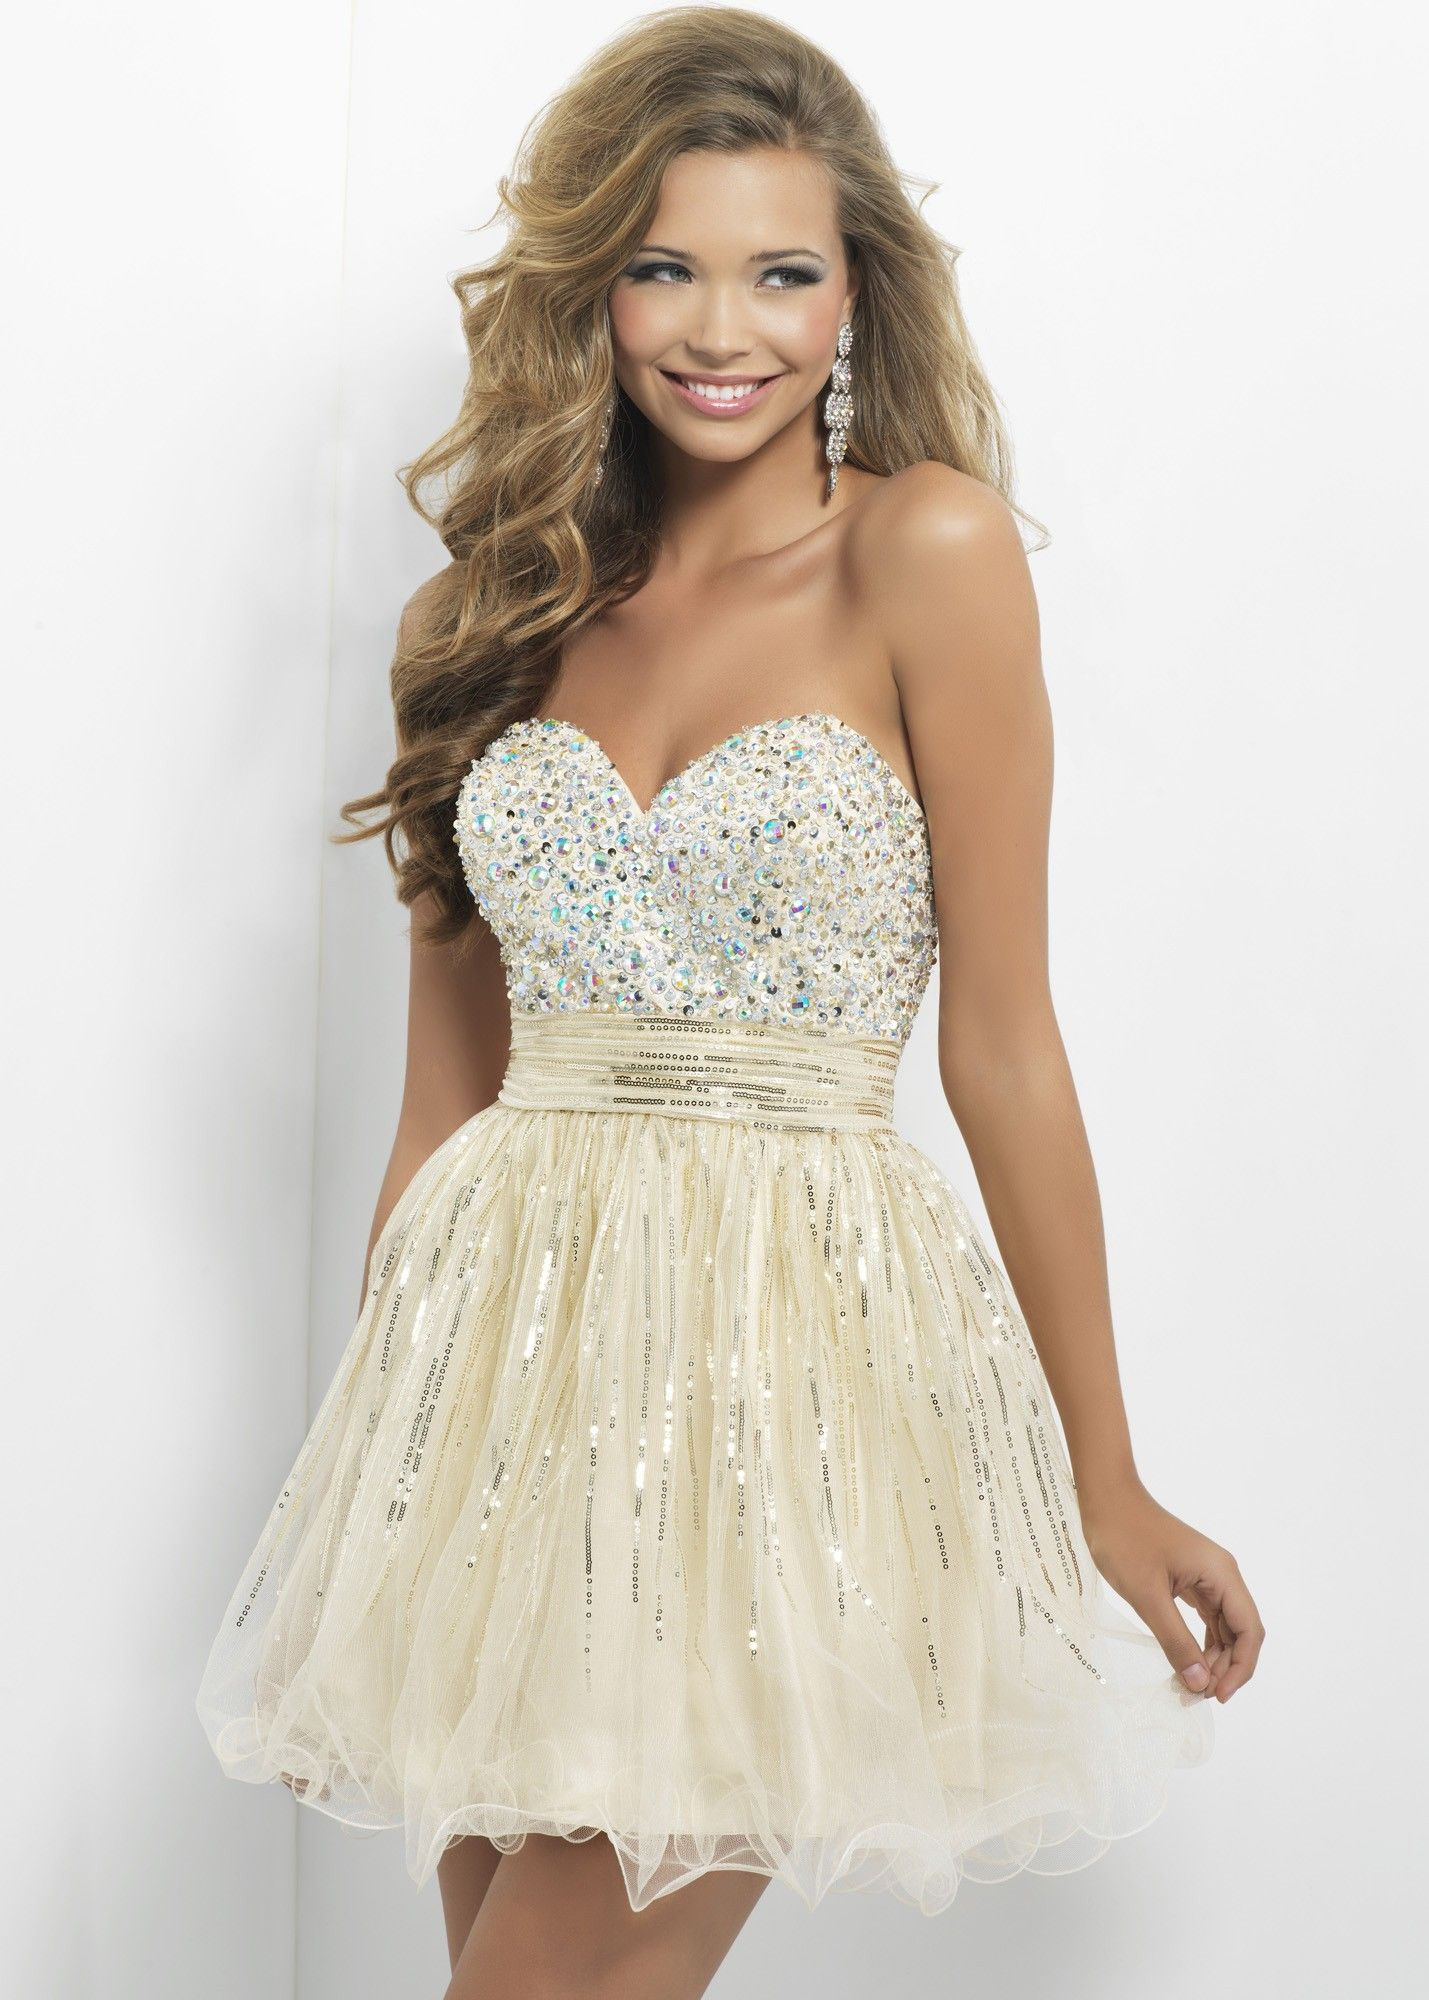 Blush prom sparkly party dress sparkling fit and flare sexy